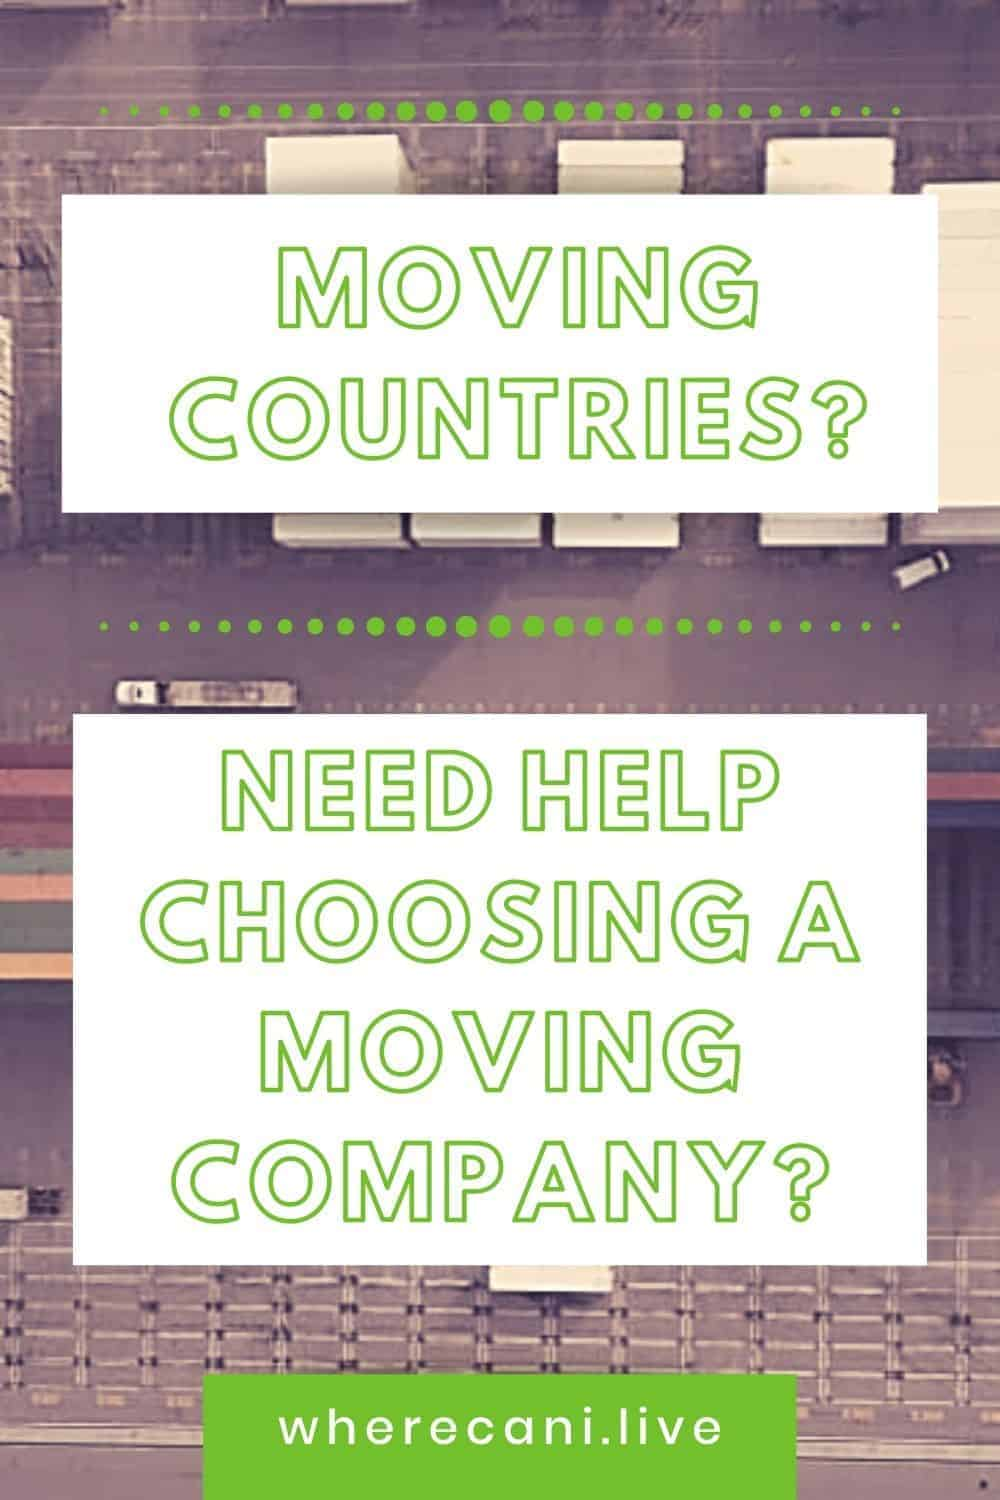 About to embark on an international move?  We can make the whole process easy with these tips. via @wherecanilive